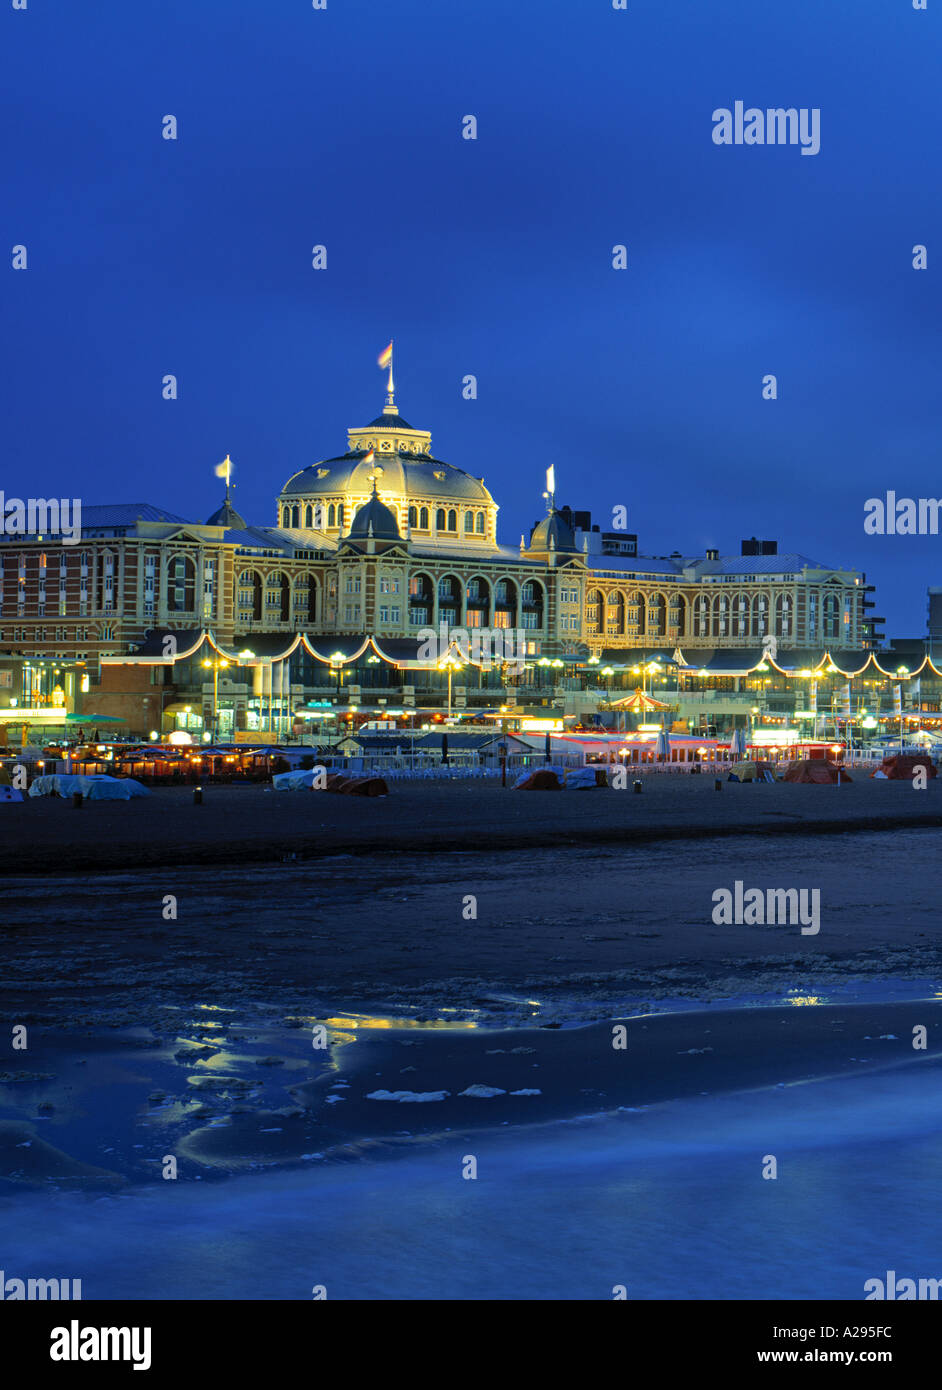 Casino, Scheveningen, Zuid, Holland - Stock Image